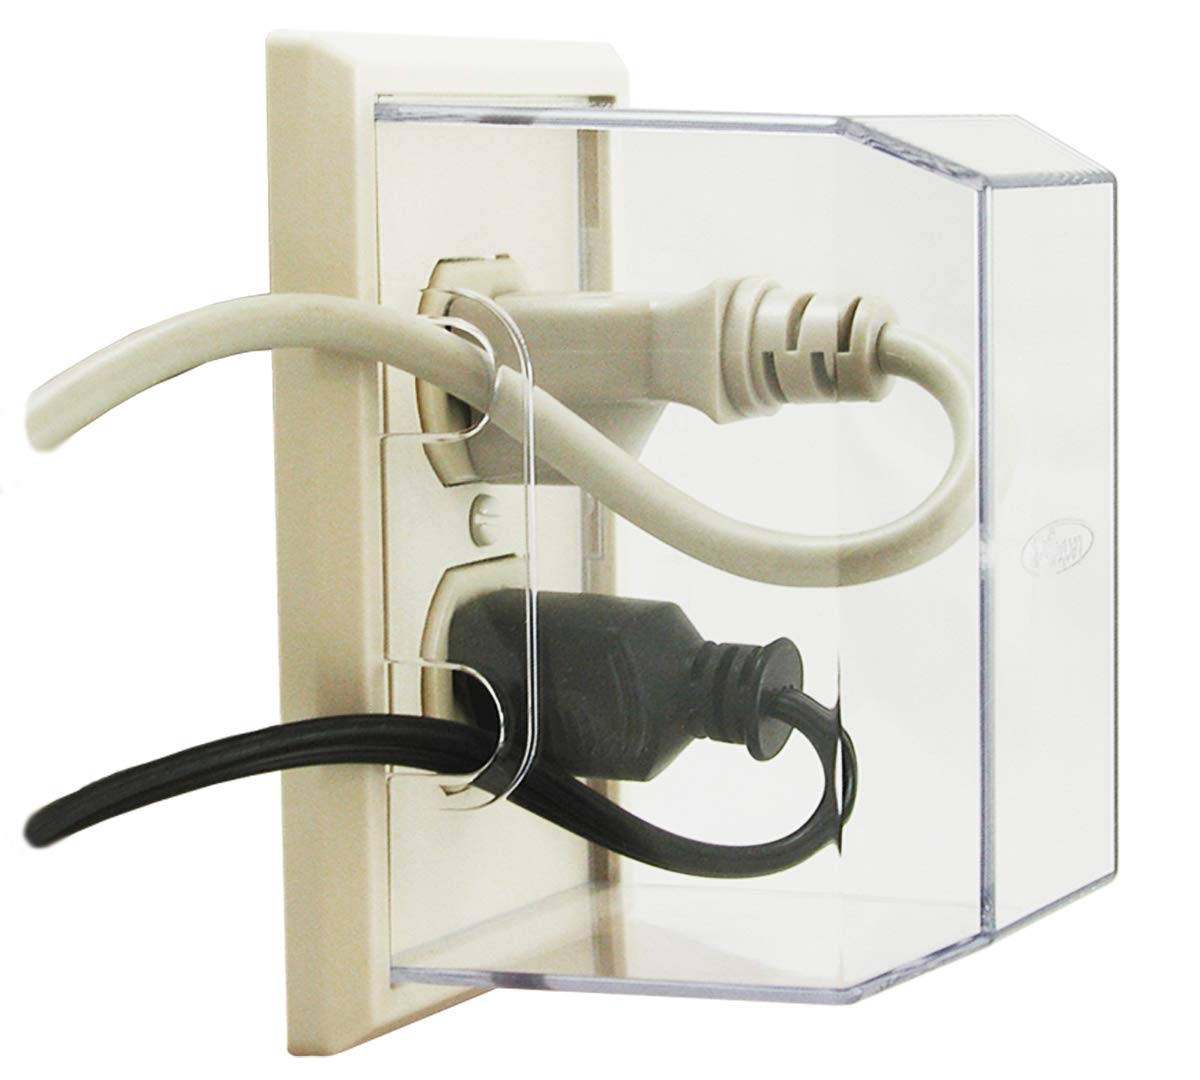 LectraLock - Baby Safety Electrical Outlet Cover - Flat Cover Outlet Protector, Almond